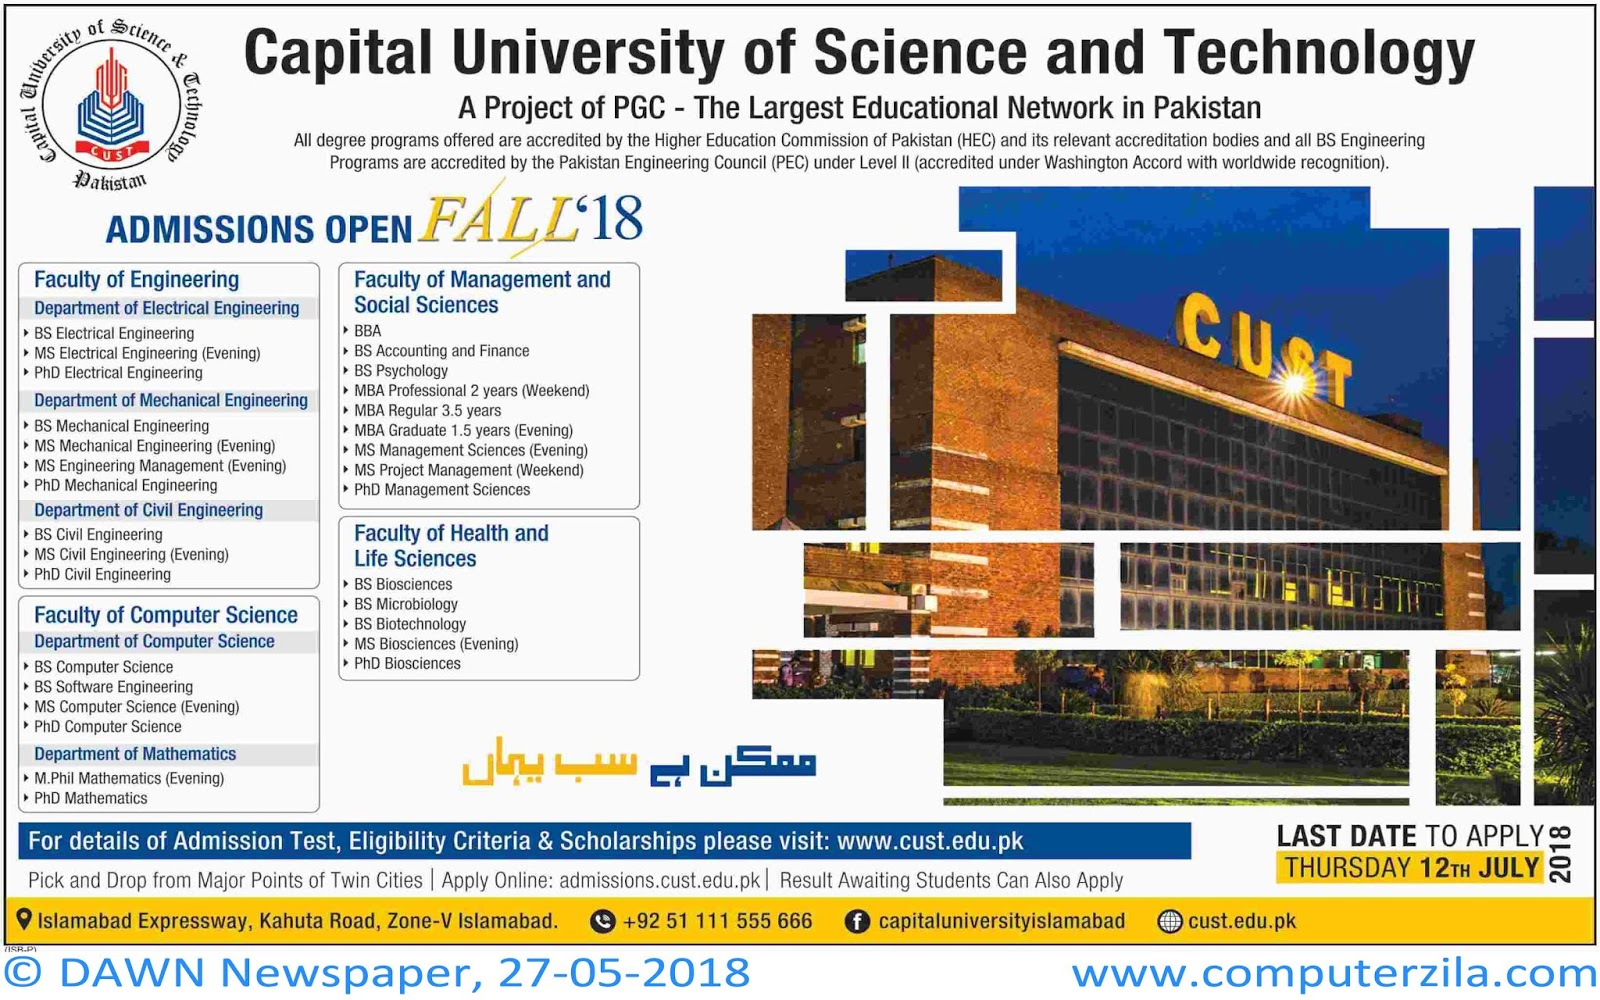 Capital University Of Science Technology Admissions Fall 2018